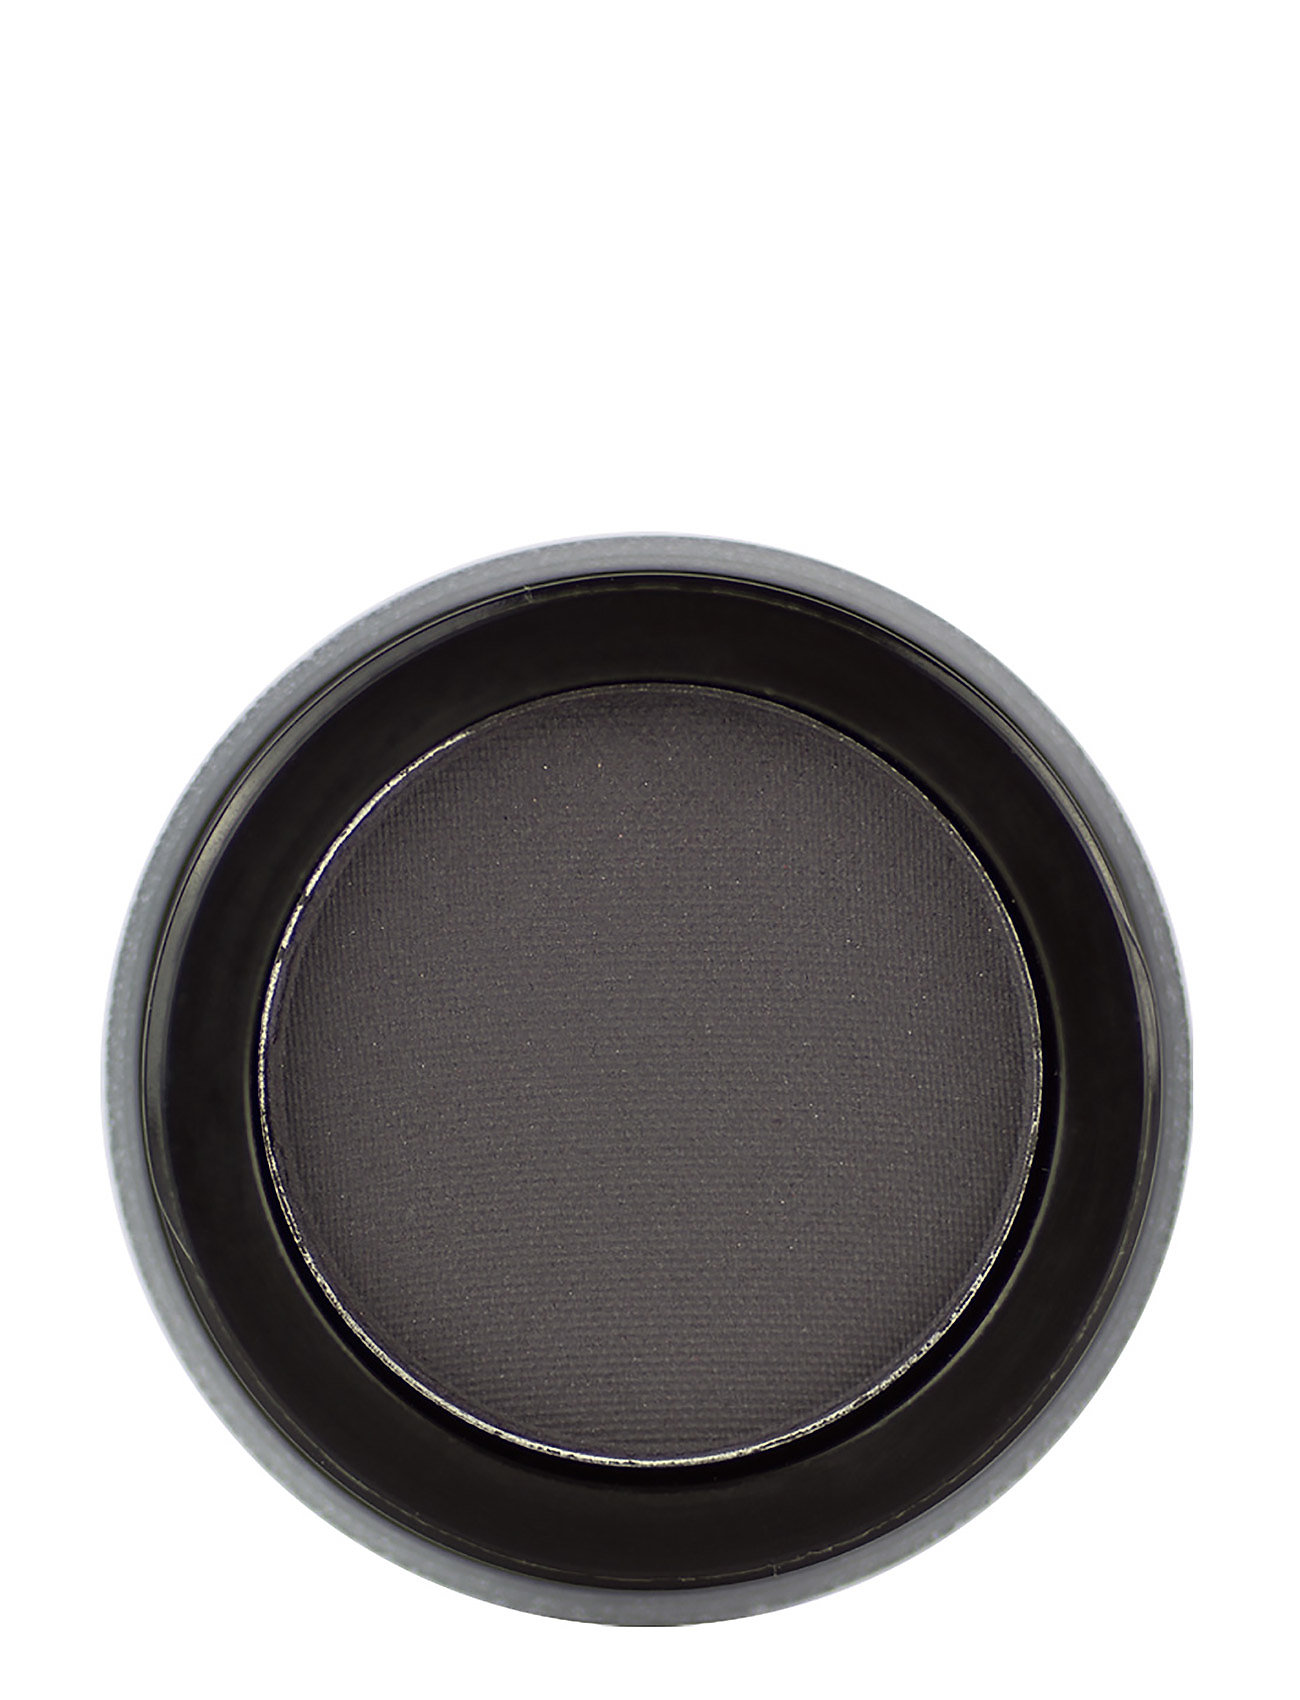 bdb billion dollar brows – Brow powder på boozt.com dk